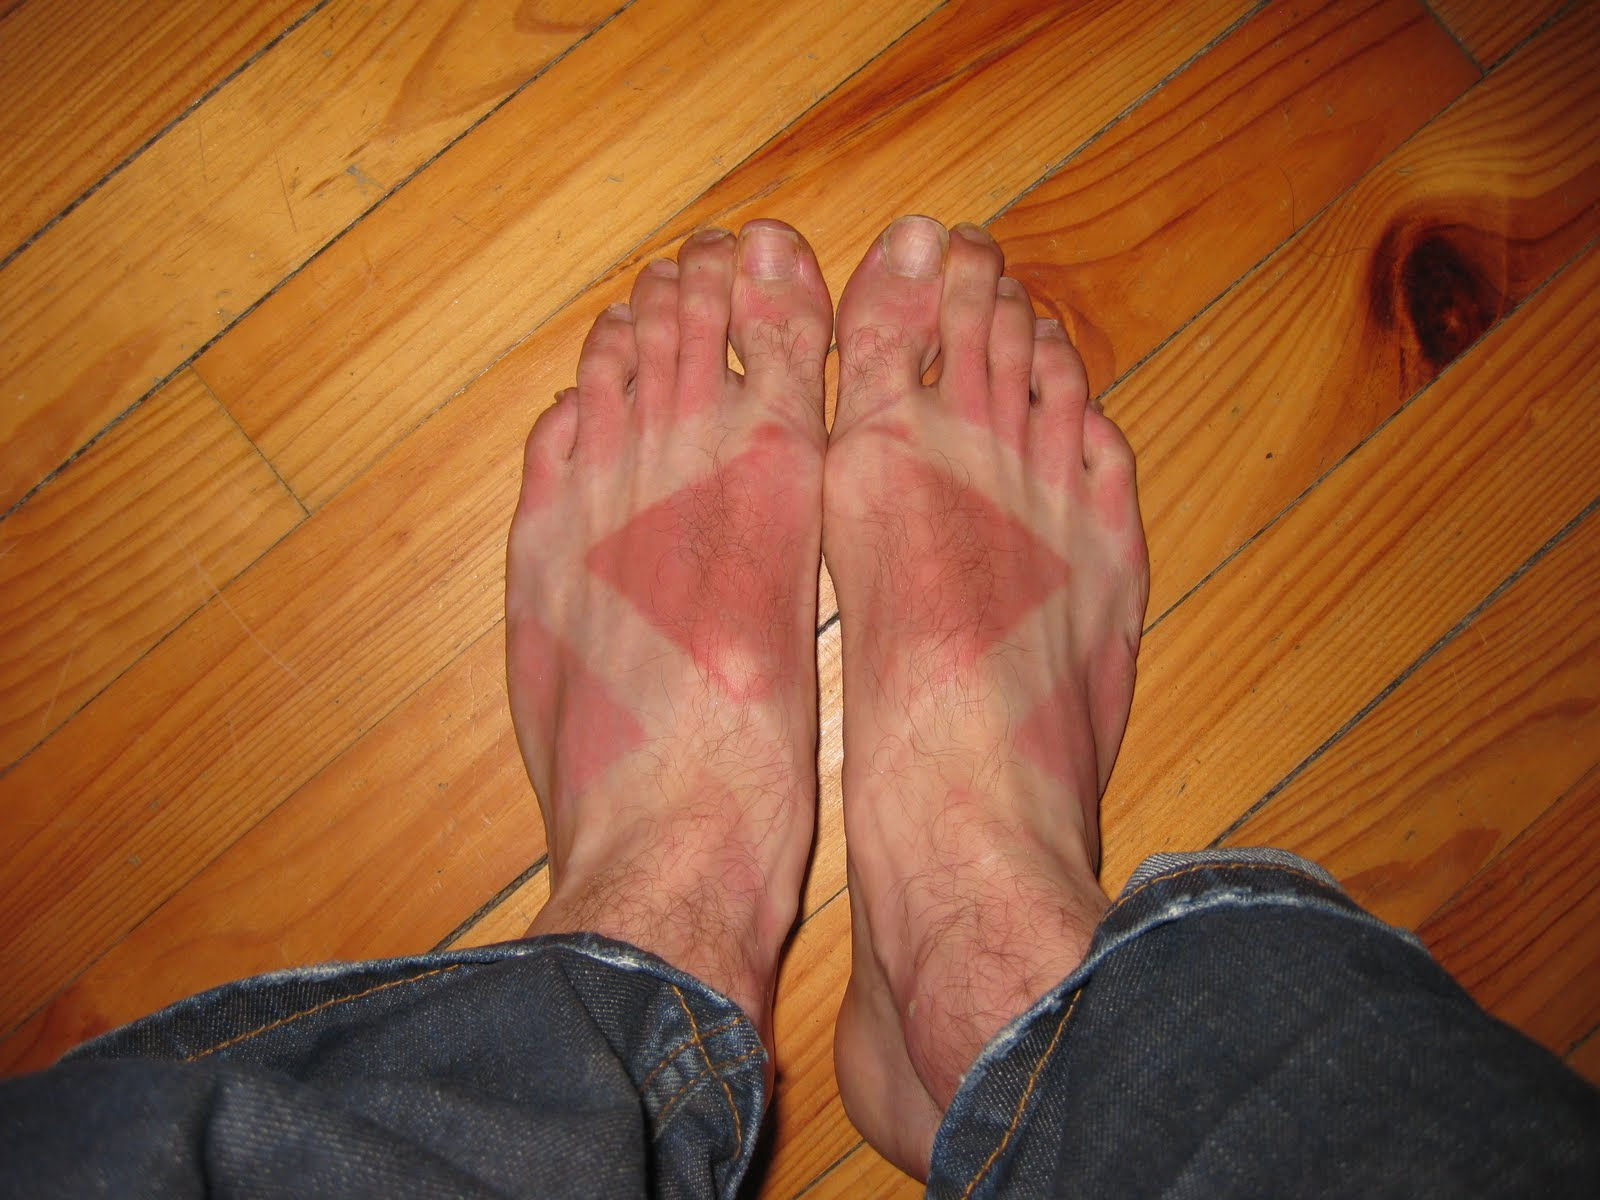 Ouch! Get some aloe on those sunburned feet!